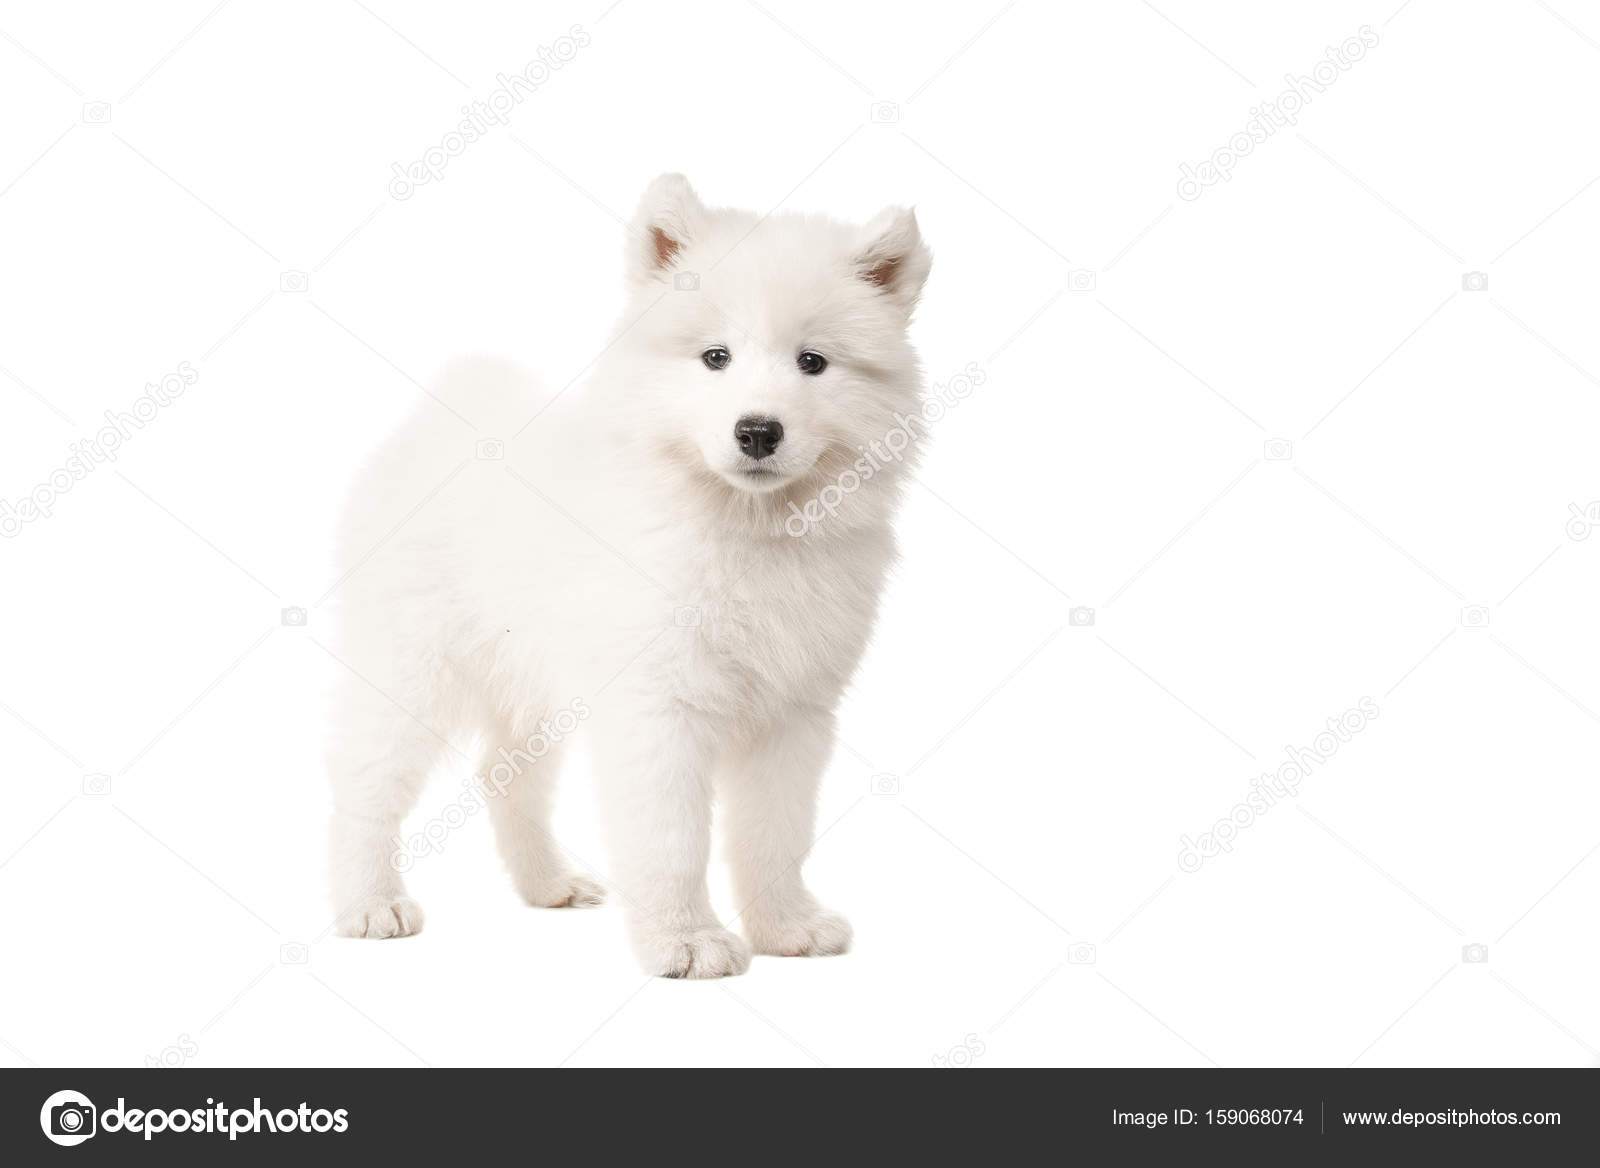 Cute Standing White Samoyed Puppy Dog Seen From The Side Looking At The Camera Isolated On A White Background Stock Photo C Miraswonderland 159068074